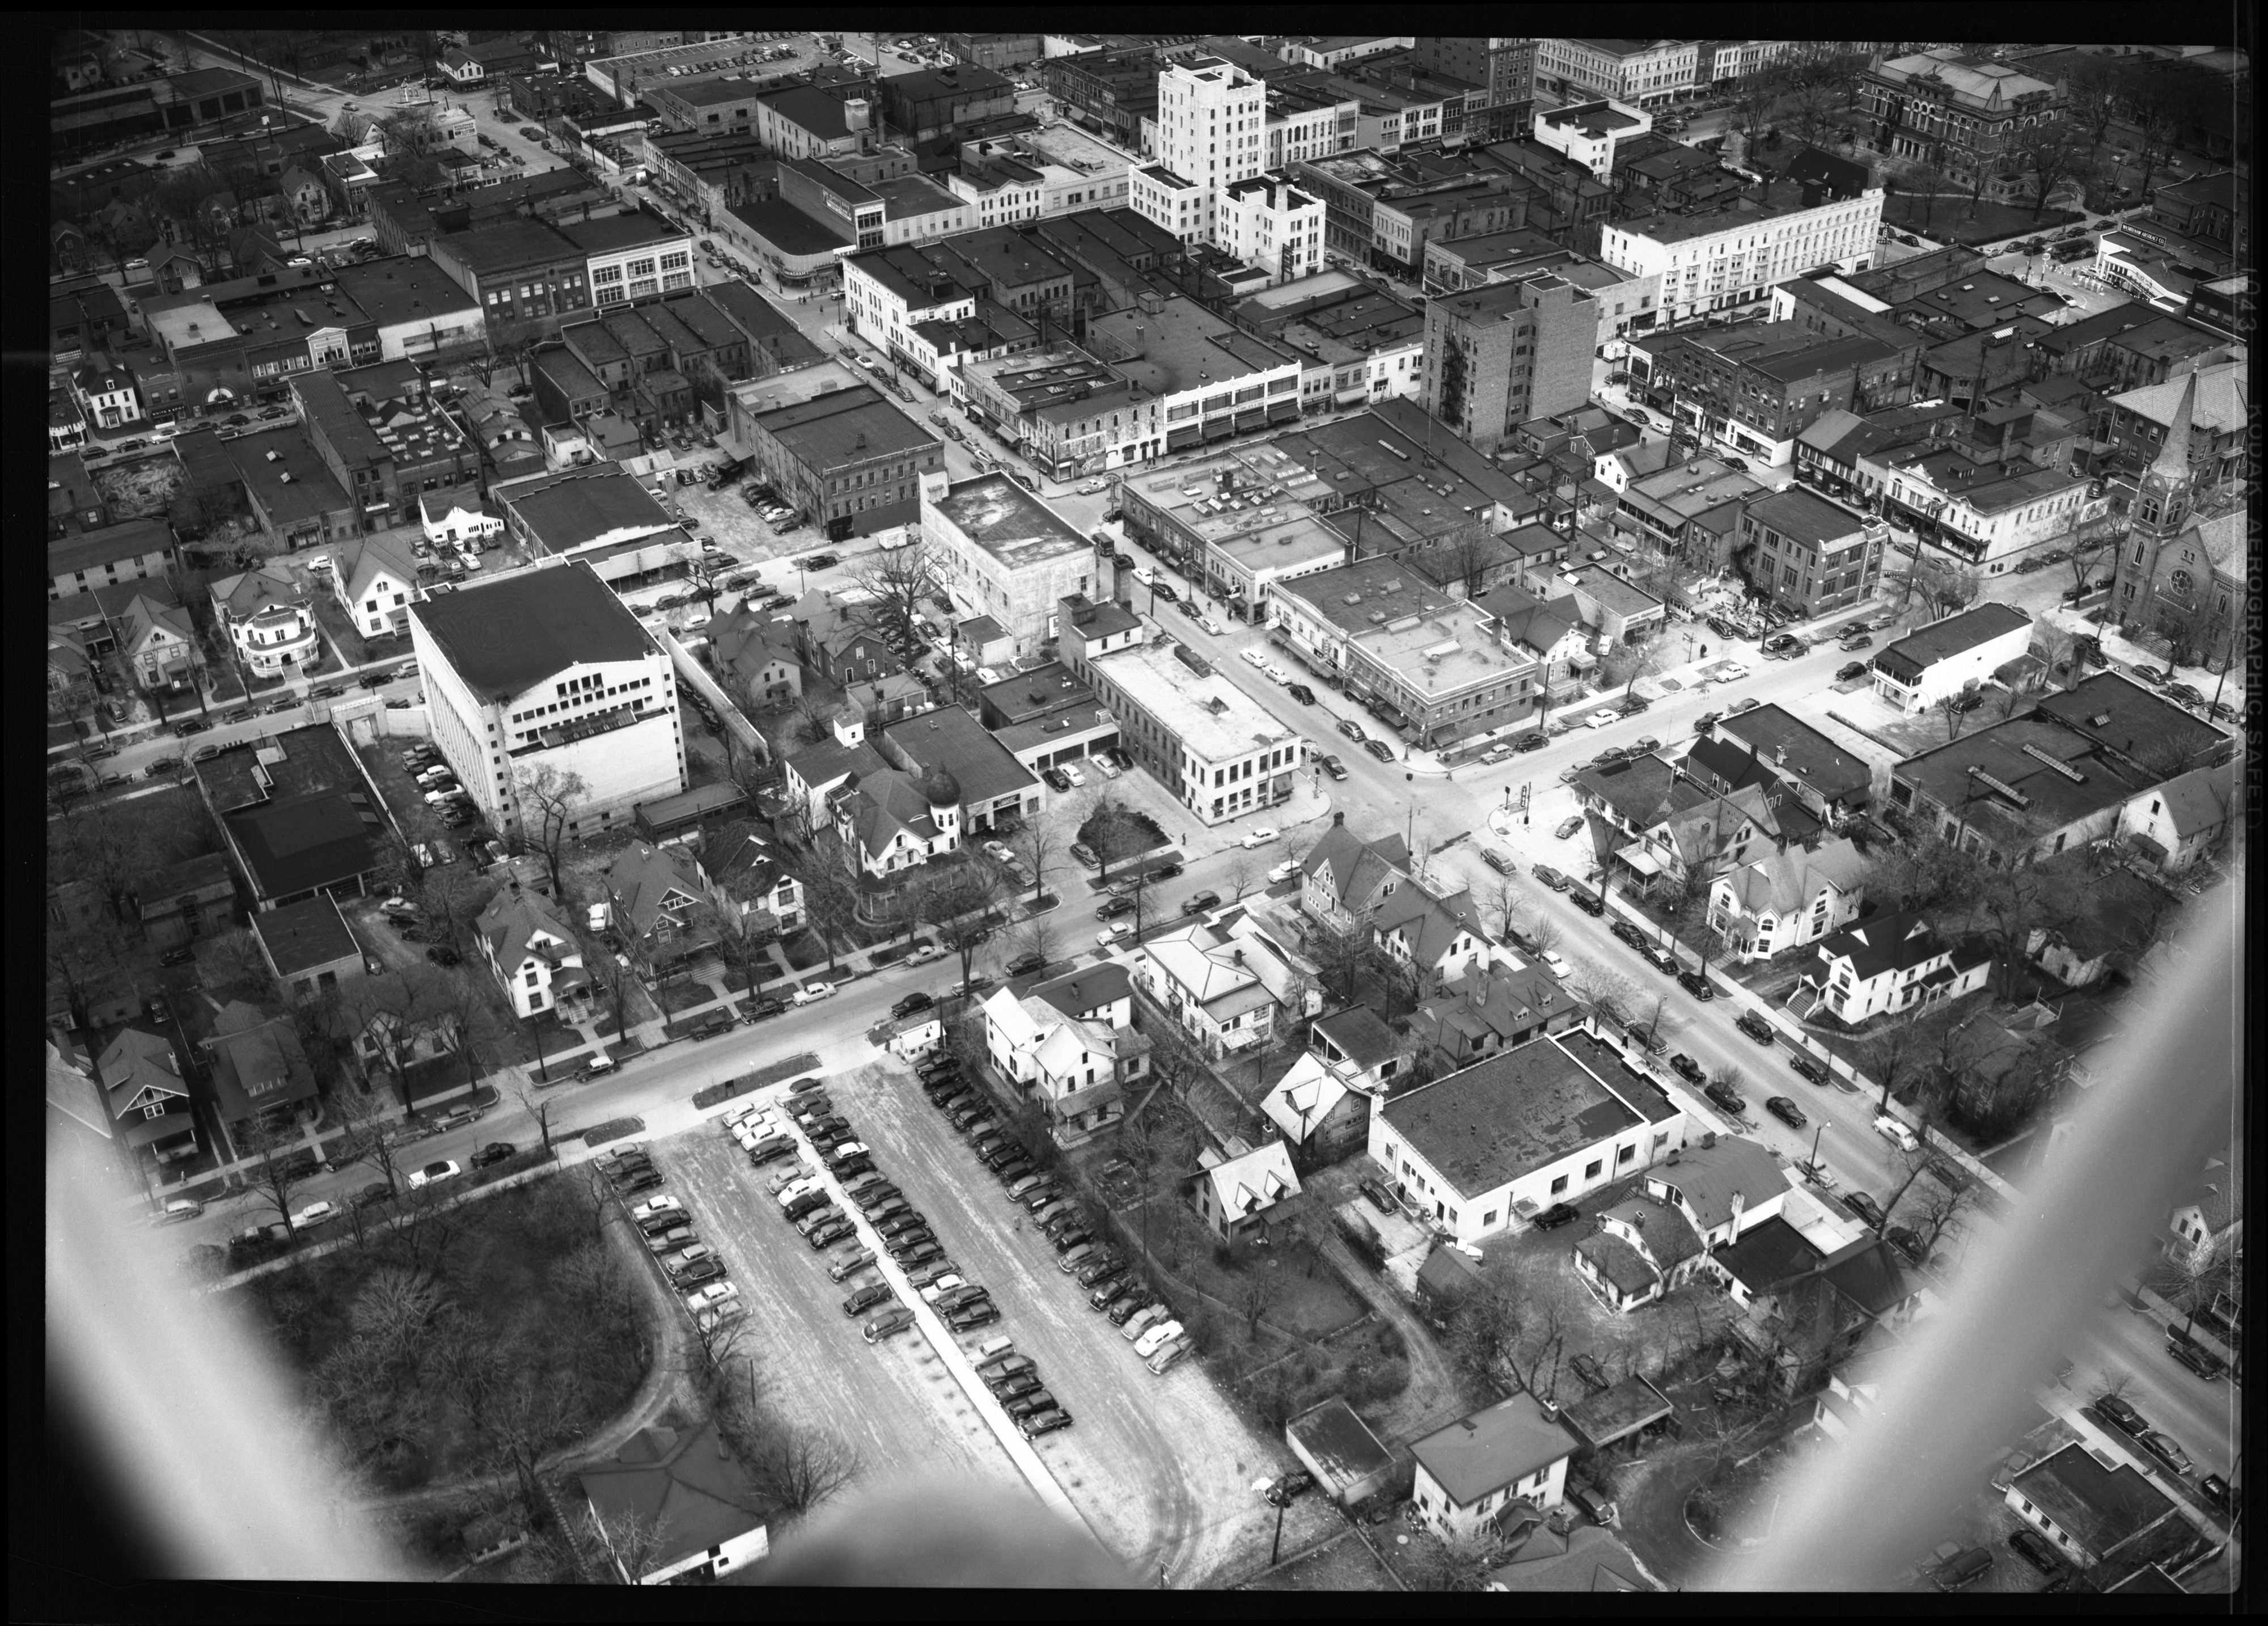 Aerial View of Ann Arbor Carport, April 1950 image